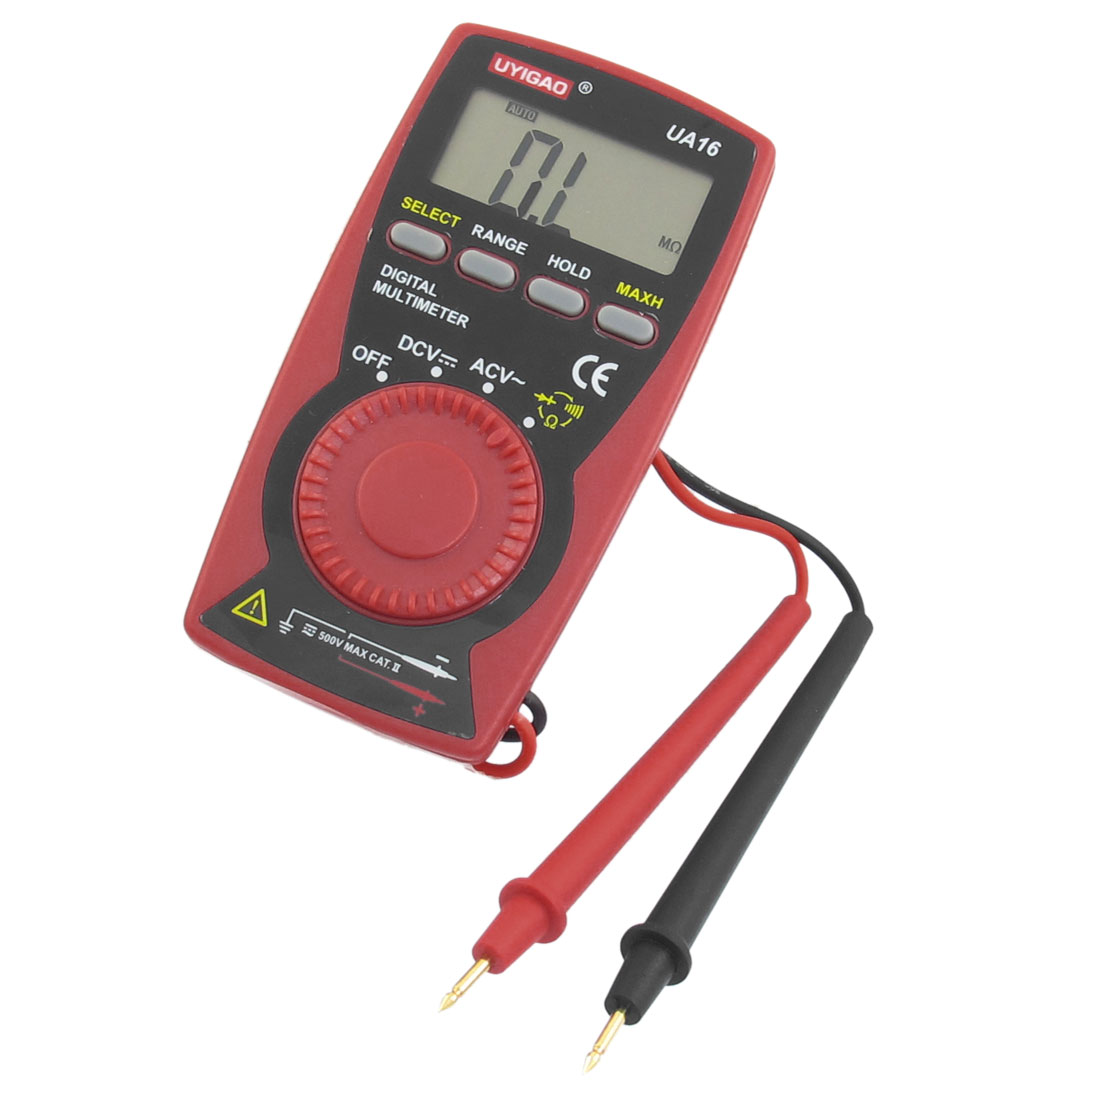 UA16 LCD Display 5 Fuction Miniature Digital Multimeter Tester Tool